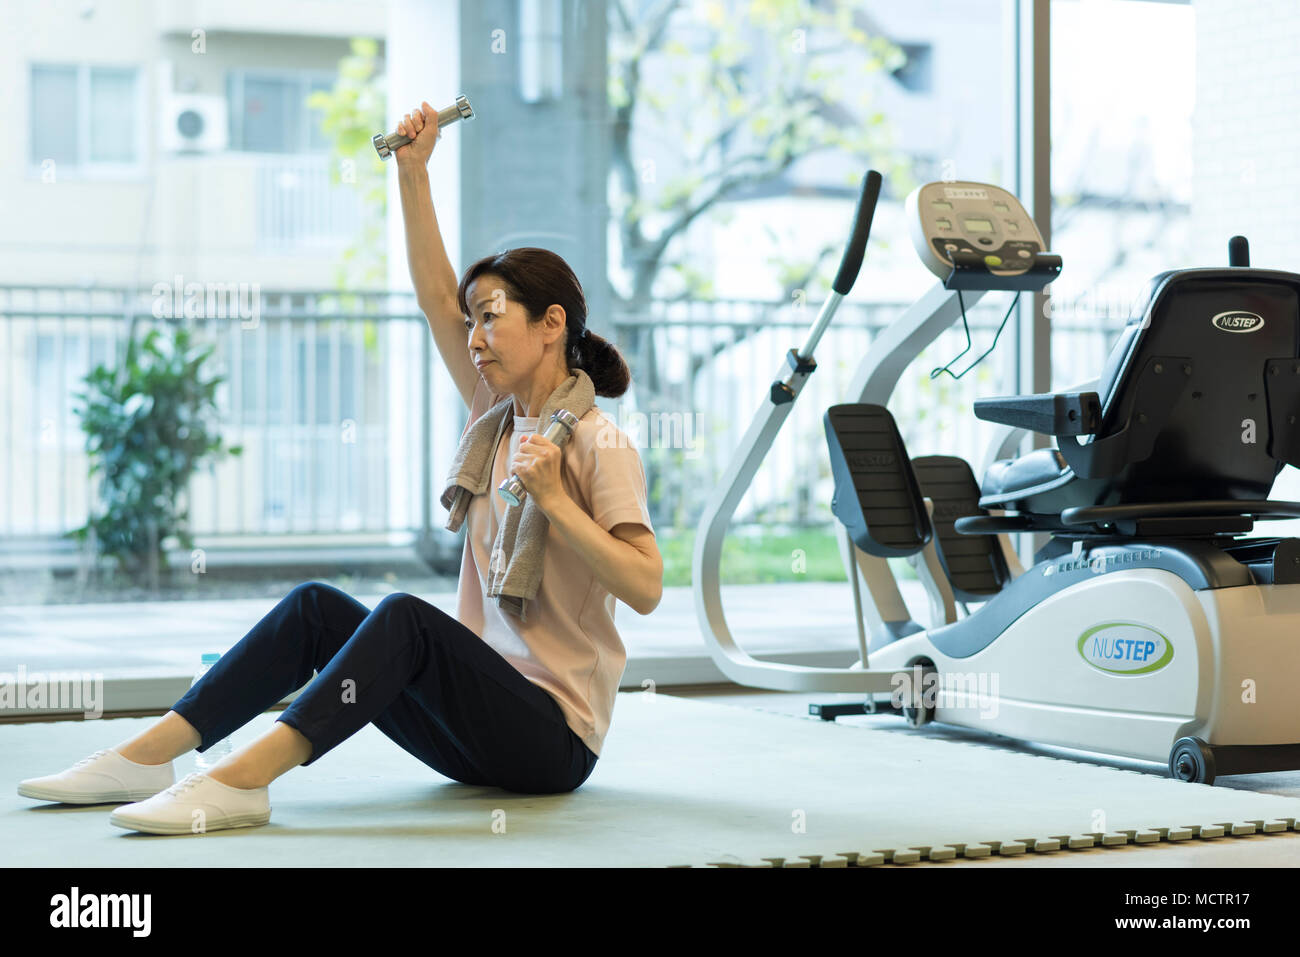 Senior woman working out with dumbbell - Stock Image